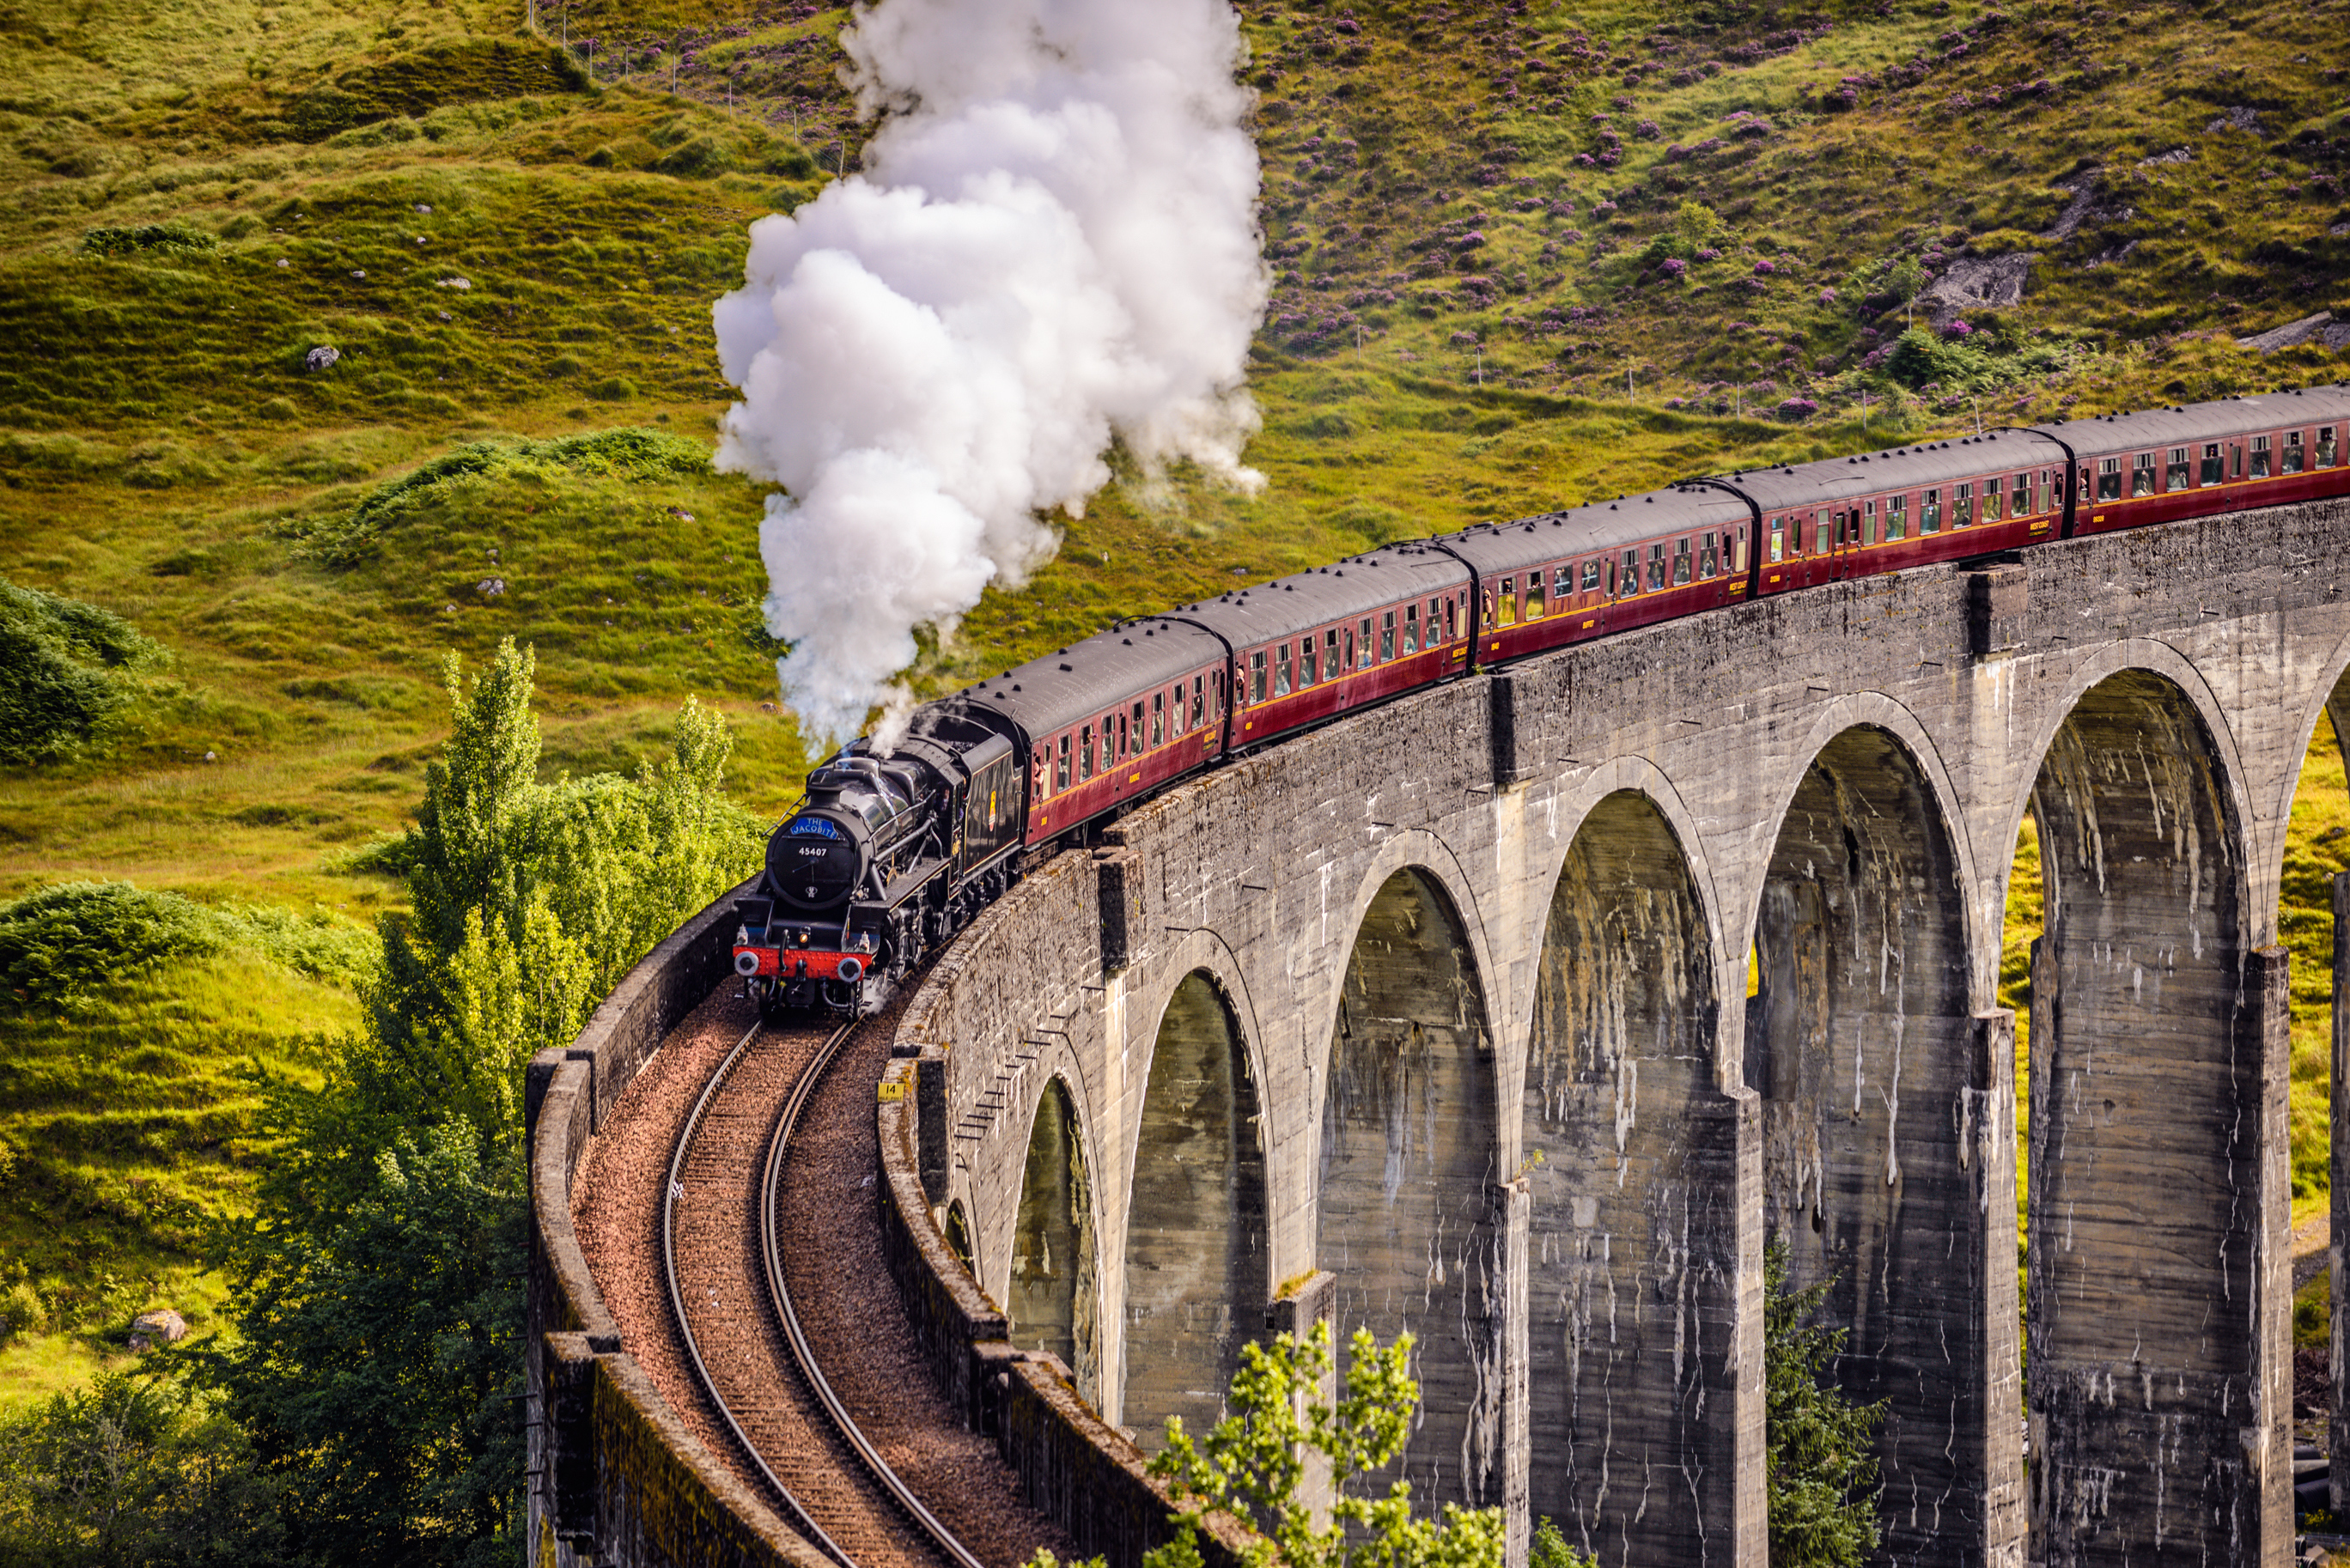 The Glenfinnan viaduct with the Jacobite steam train passing over.